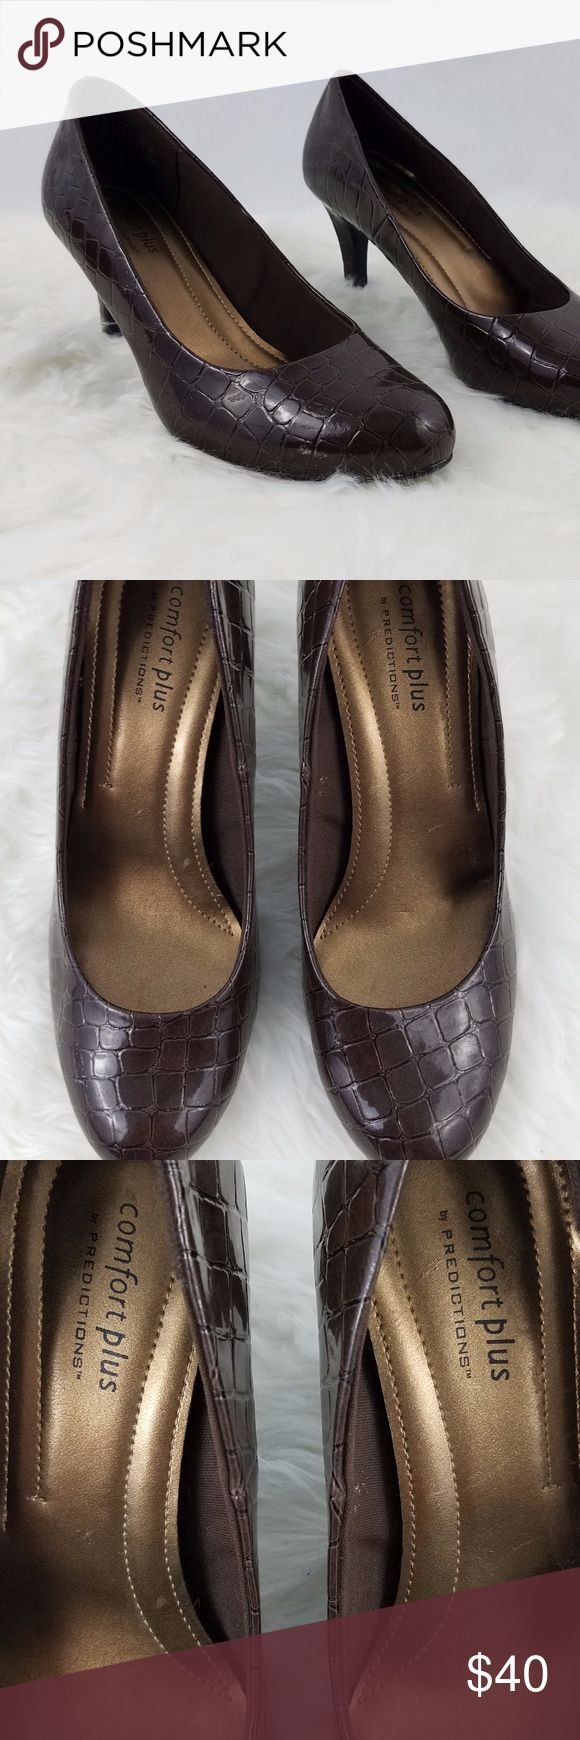 "Comfort Plus Predictions Womens Vegan  Brown Pumps Size 7.5  Gently Worn - Please see photos. Heel height - 3"" Insole measures 9.5"" Ball of shoe width 3"" Smoke-free home Item #77 Comfort Plus Predictions Shoes Heels"